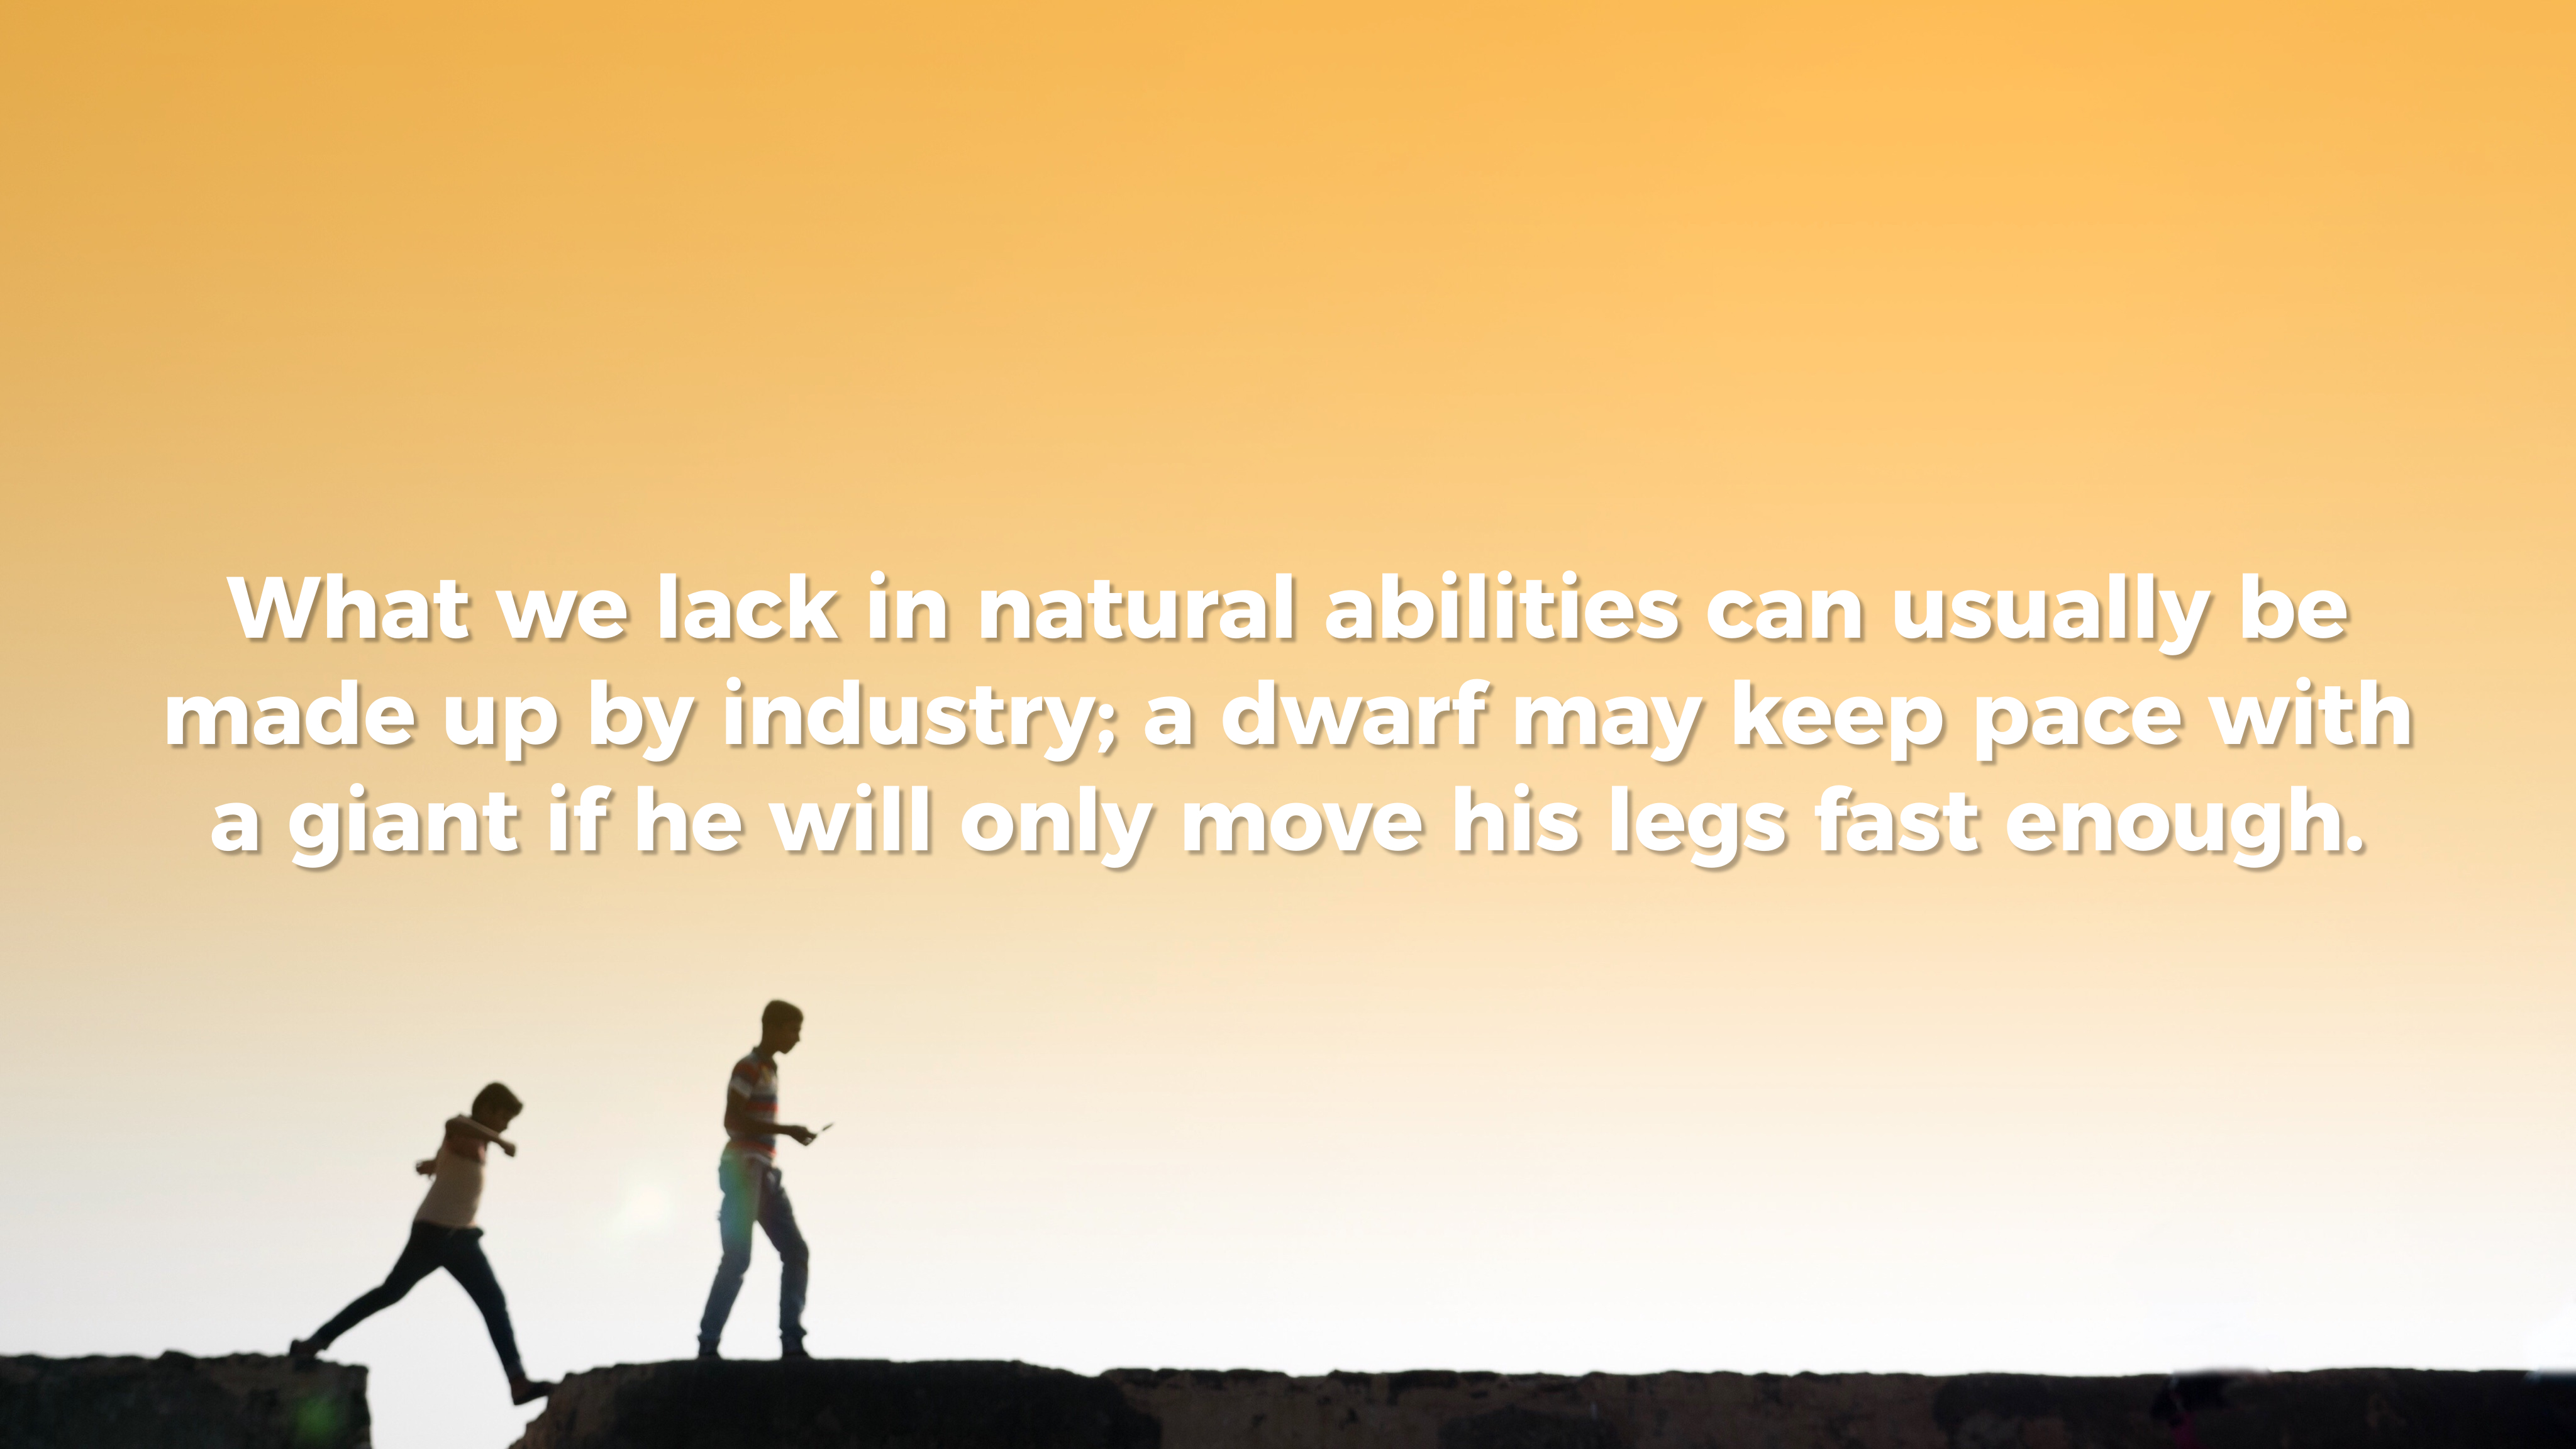 hard work beats natural ability simple thing called life what we lack in natural abilities usually be made up by industry a dwarf keep pace a giant if he will only move his legs fast enough